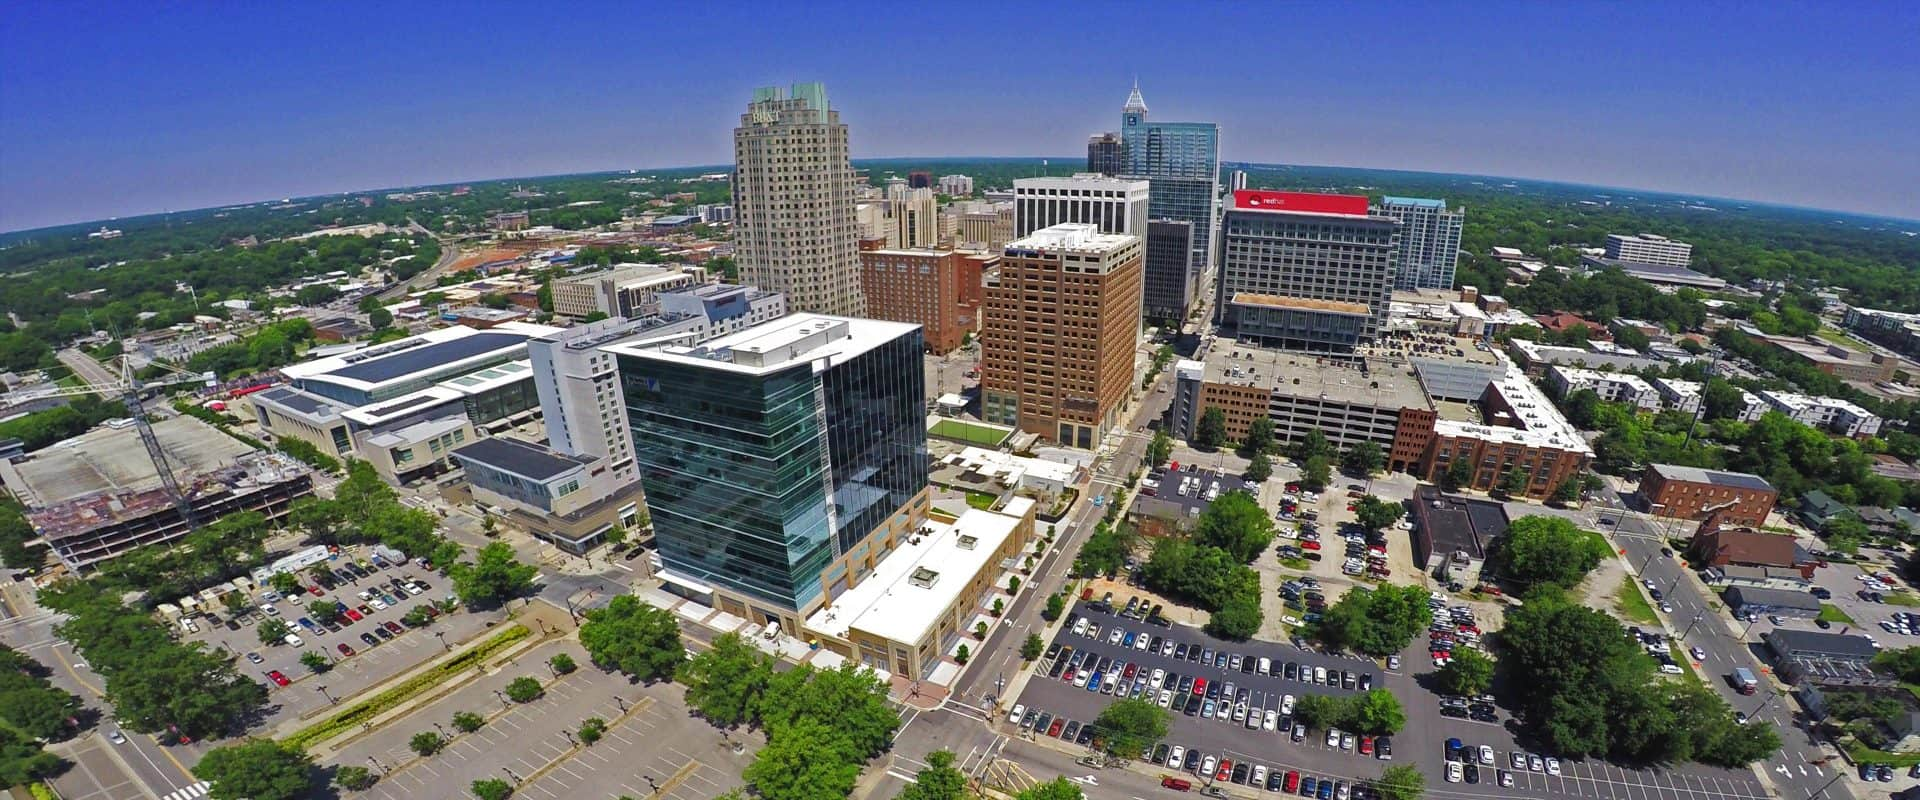 William Peace University is located in downtown Raleigh, NC